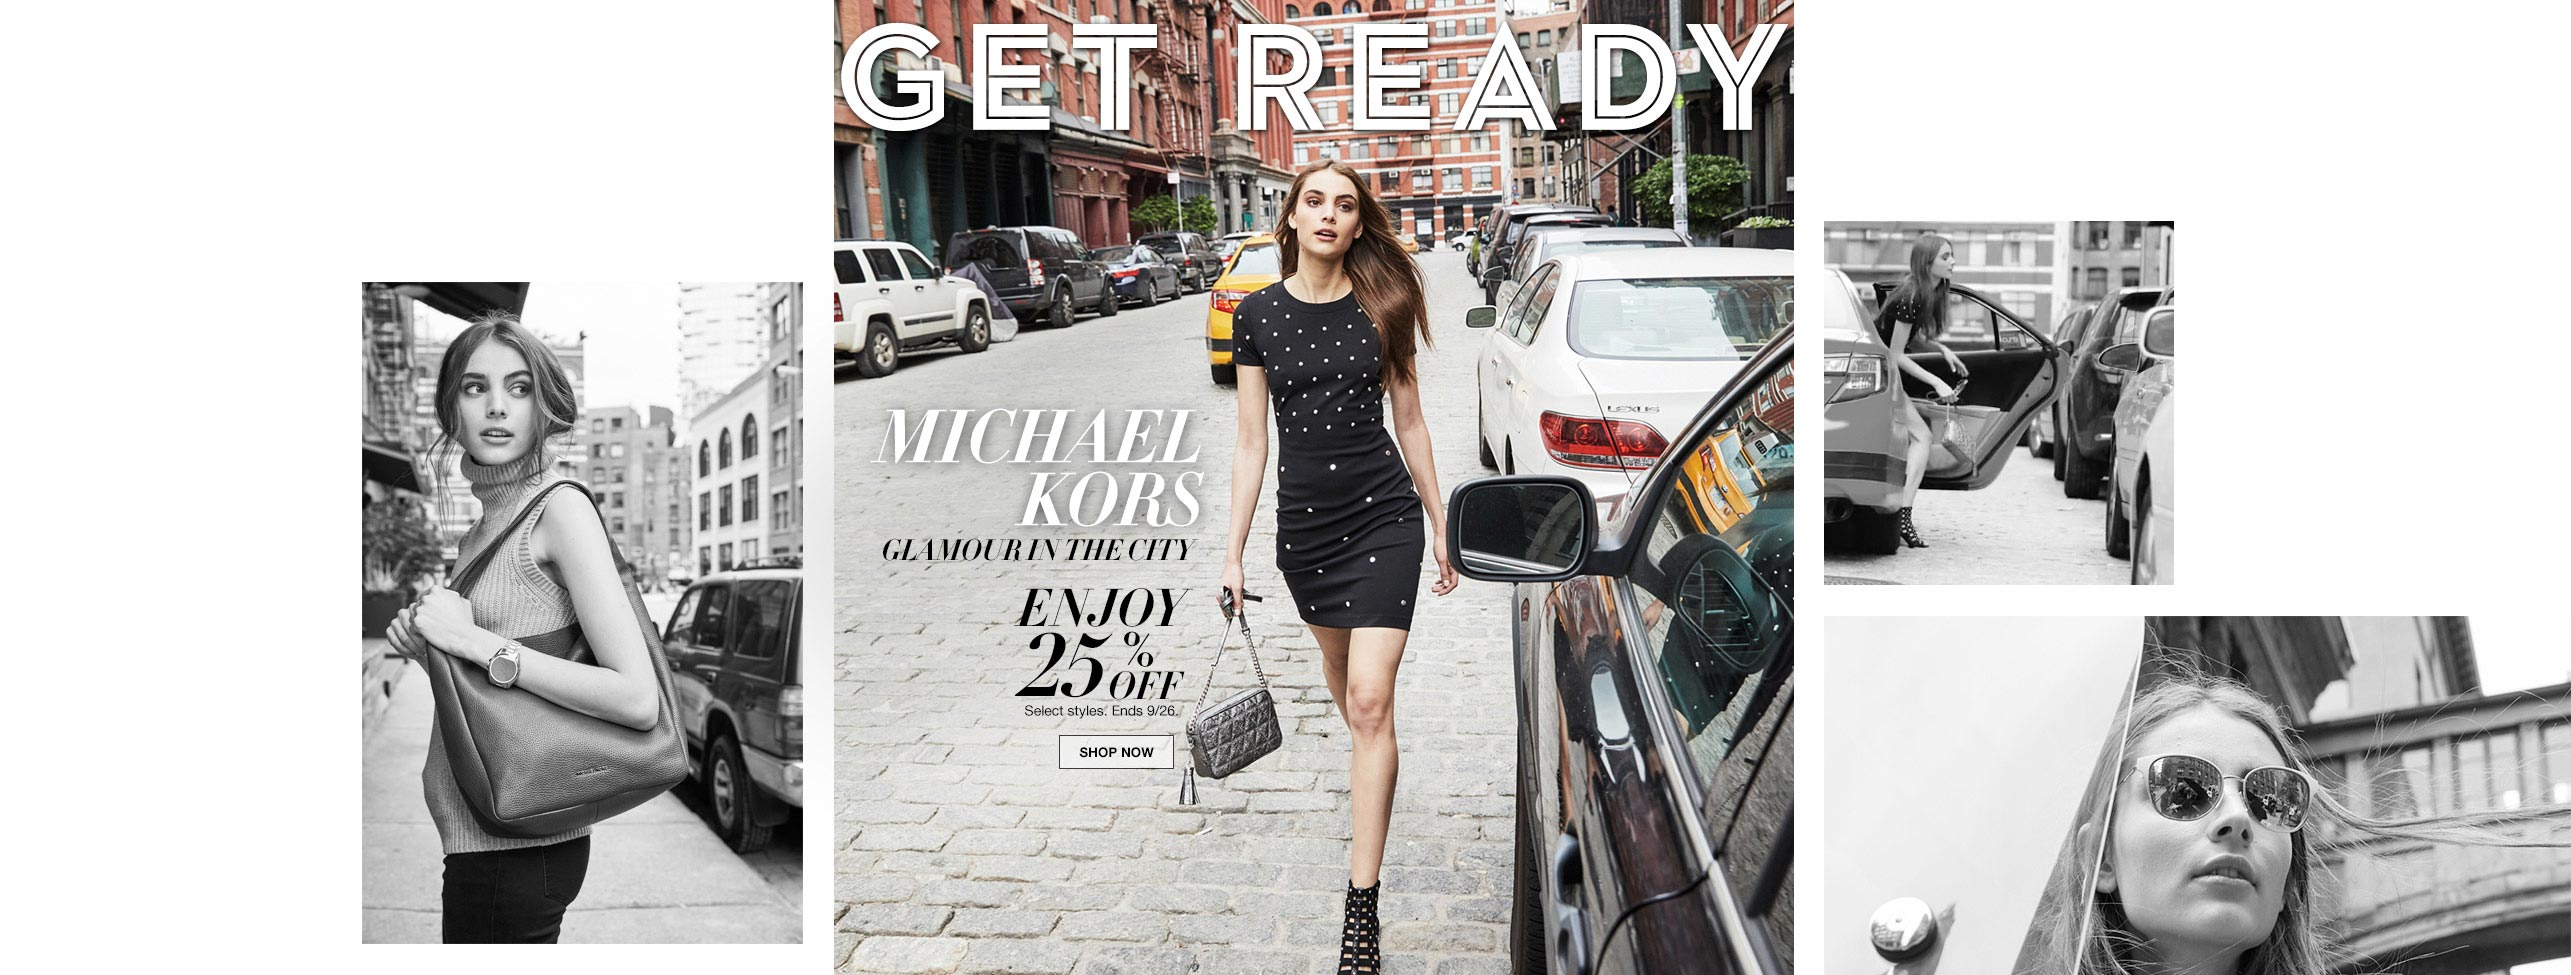 get ready michael kors glamour in the city. enjoy 25 percent off. select styles. ends september 26th.